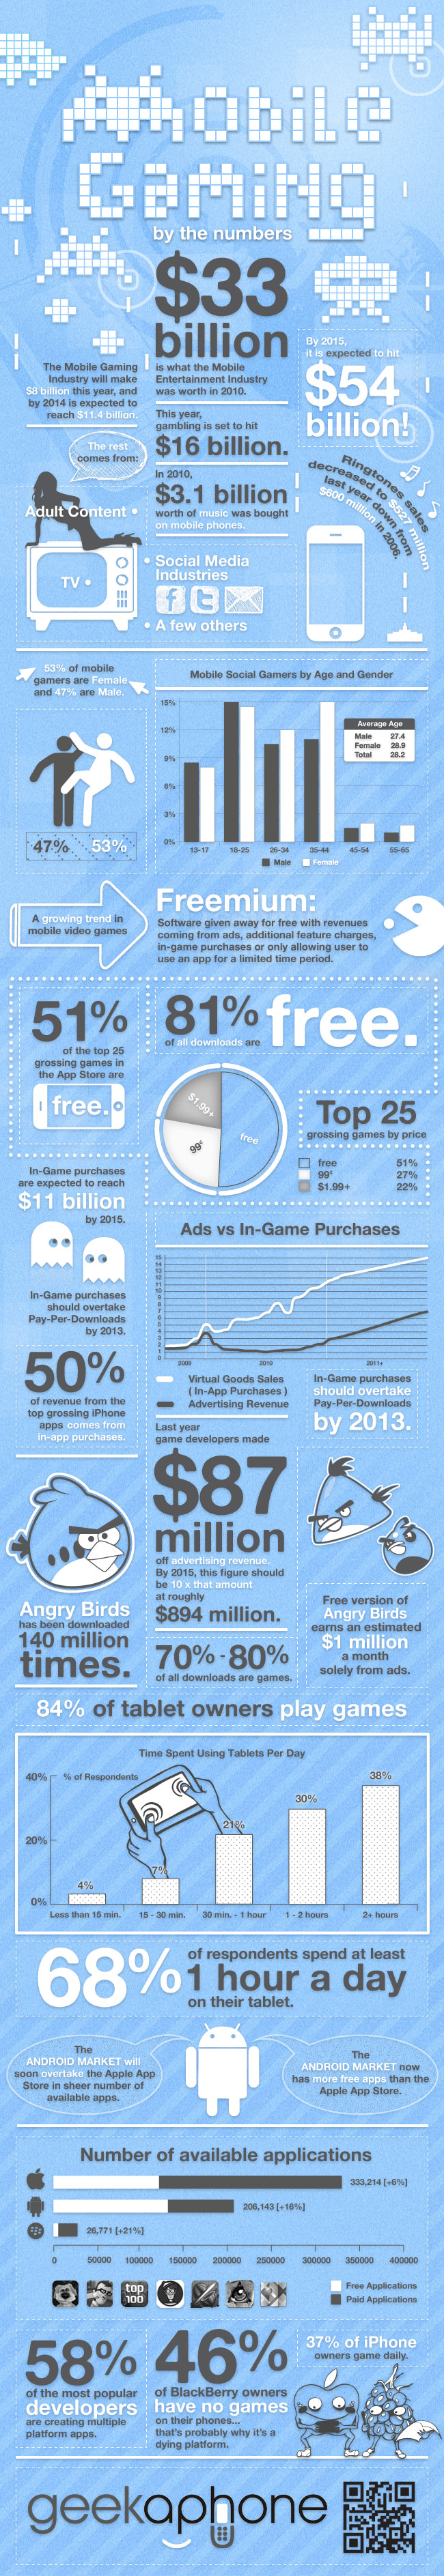 Mobile gaming infographic